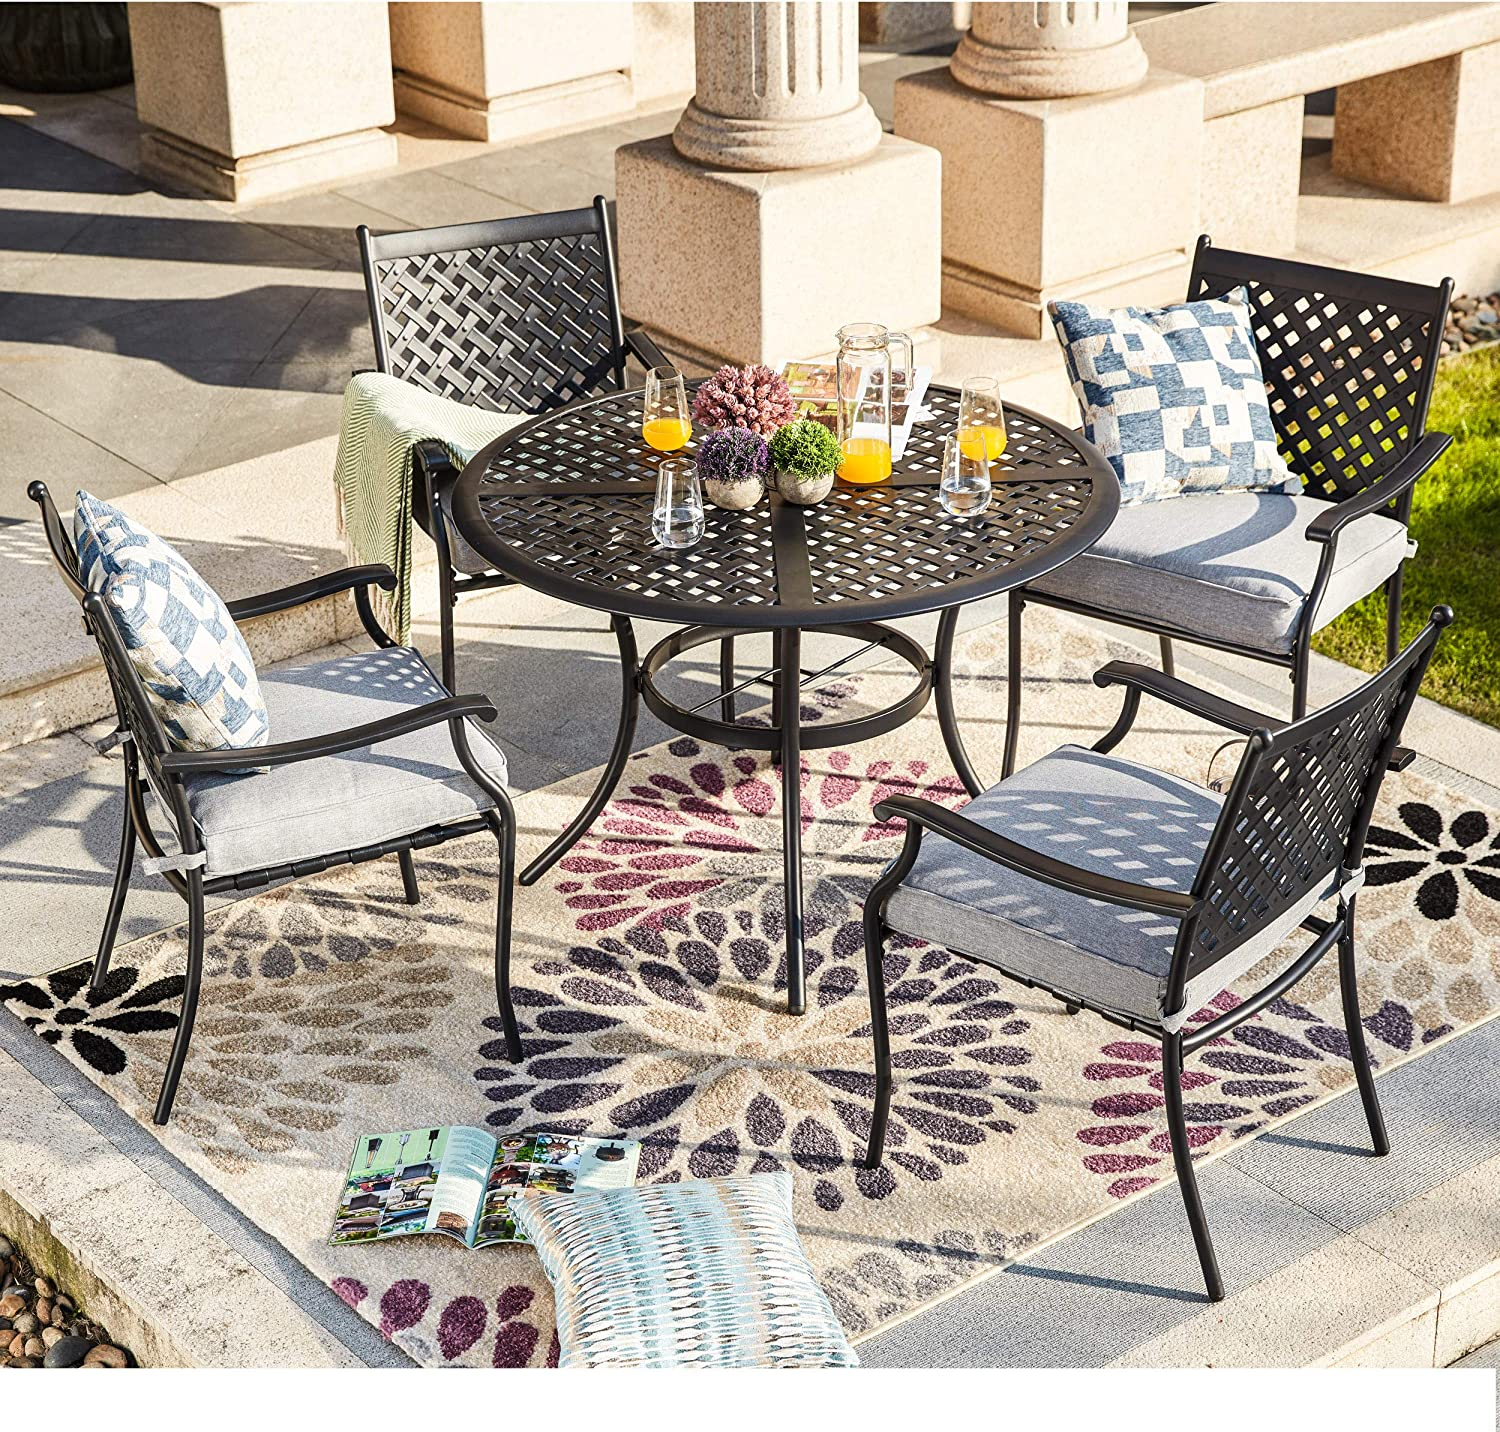 LOKATSE HOME 100 Piece Outdoor Patio Metal Dining Set with 100 Outdoor Iron Arm  Dining Chairs with Seat Cushions and 10 Outdoor Dining Table with Umbrella  ...